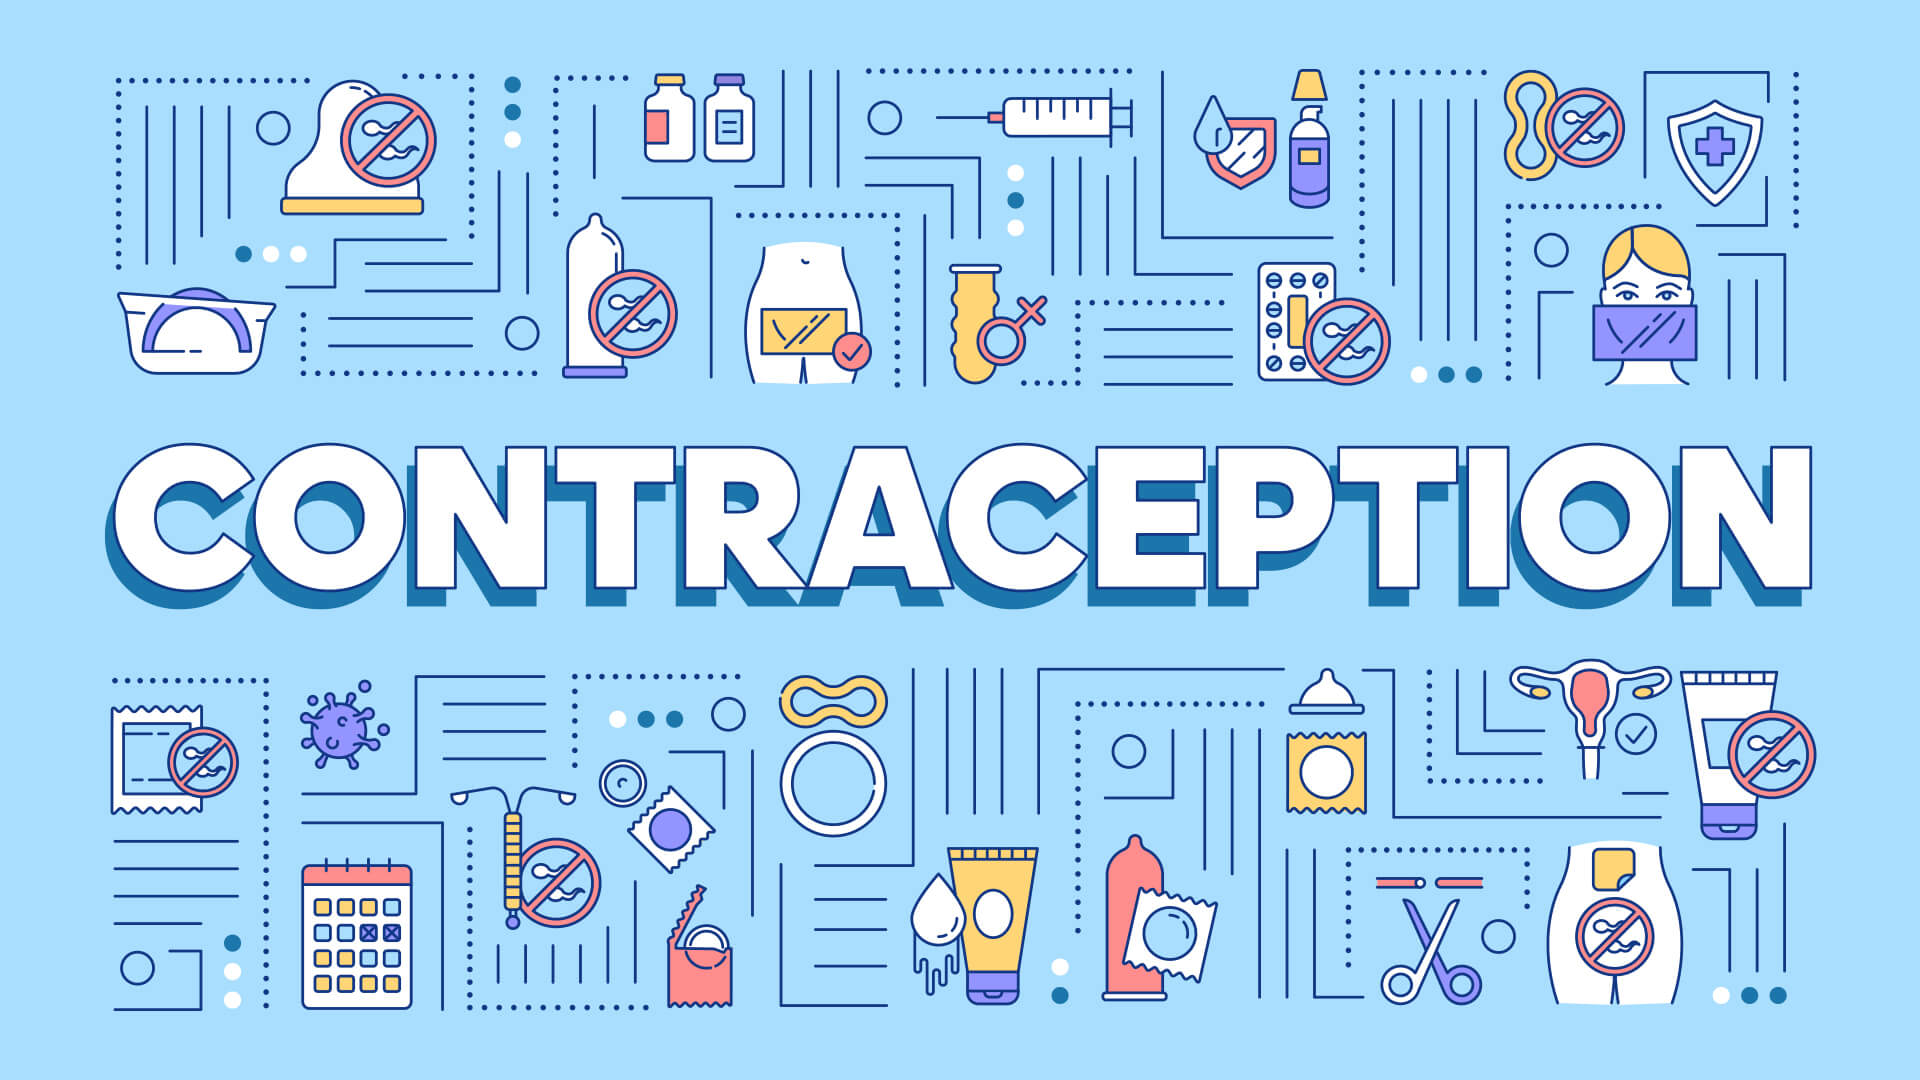 What are the Common Misconceptions About Birth Control?